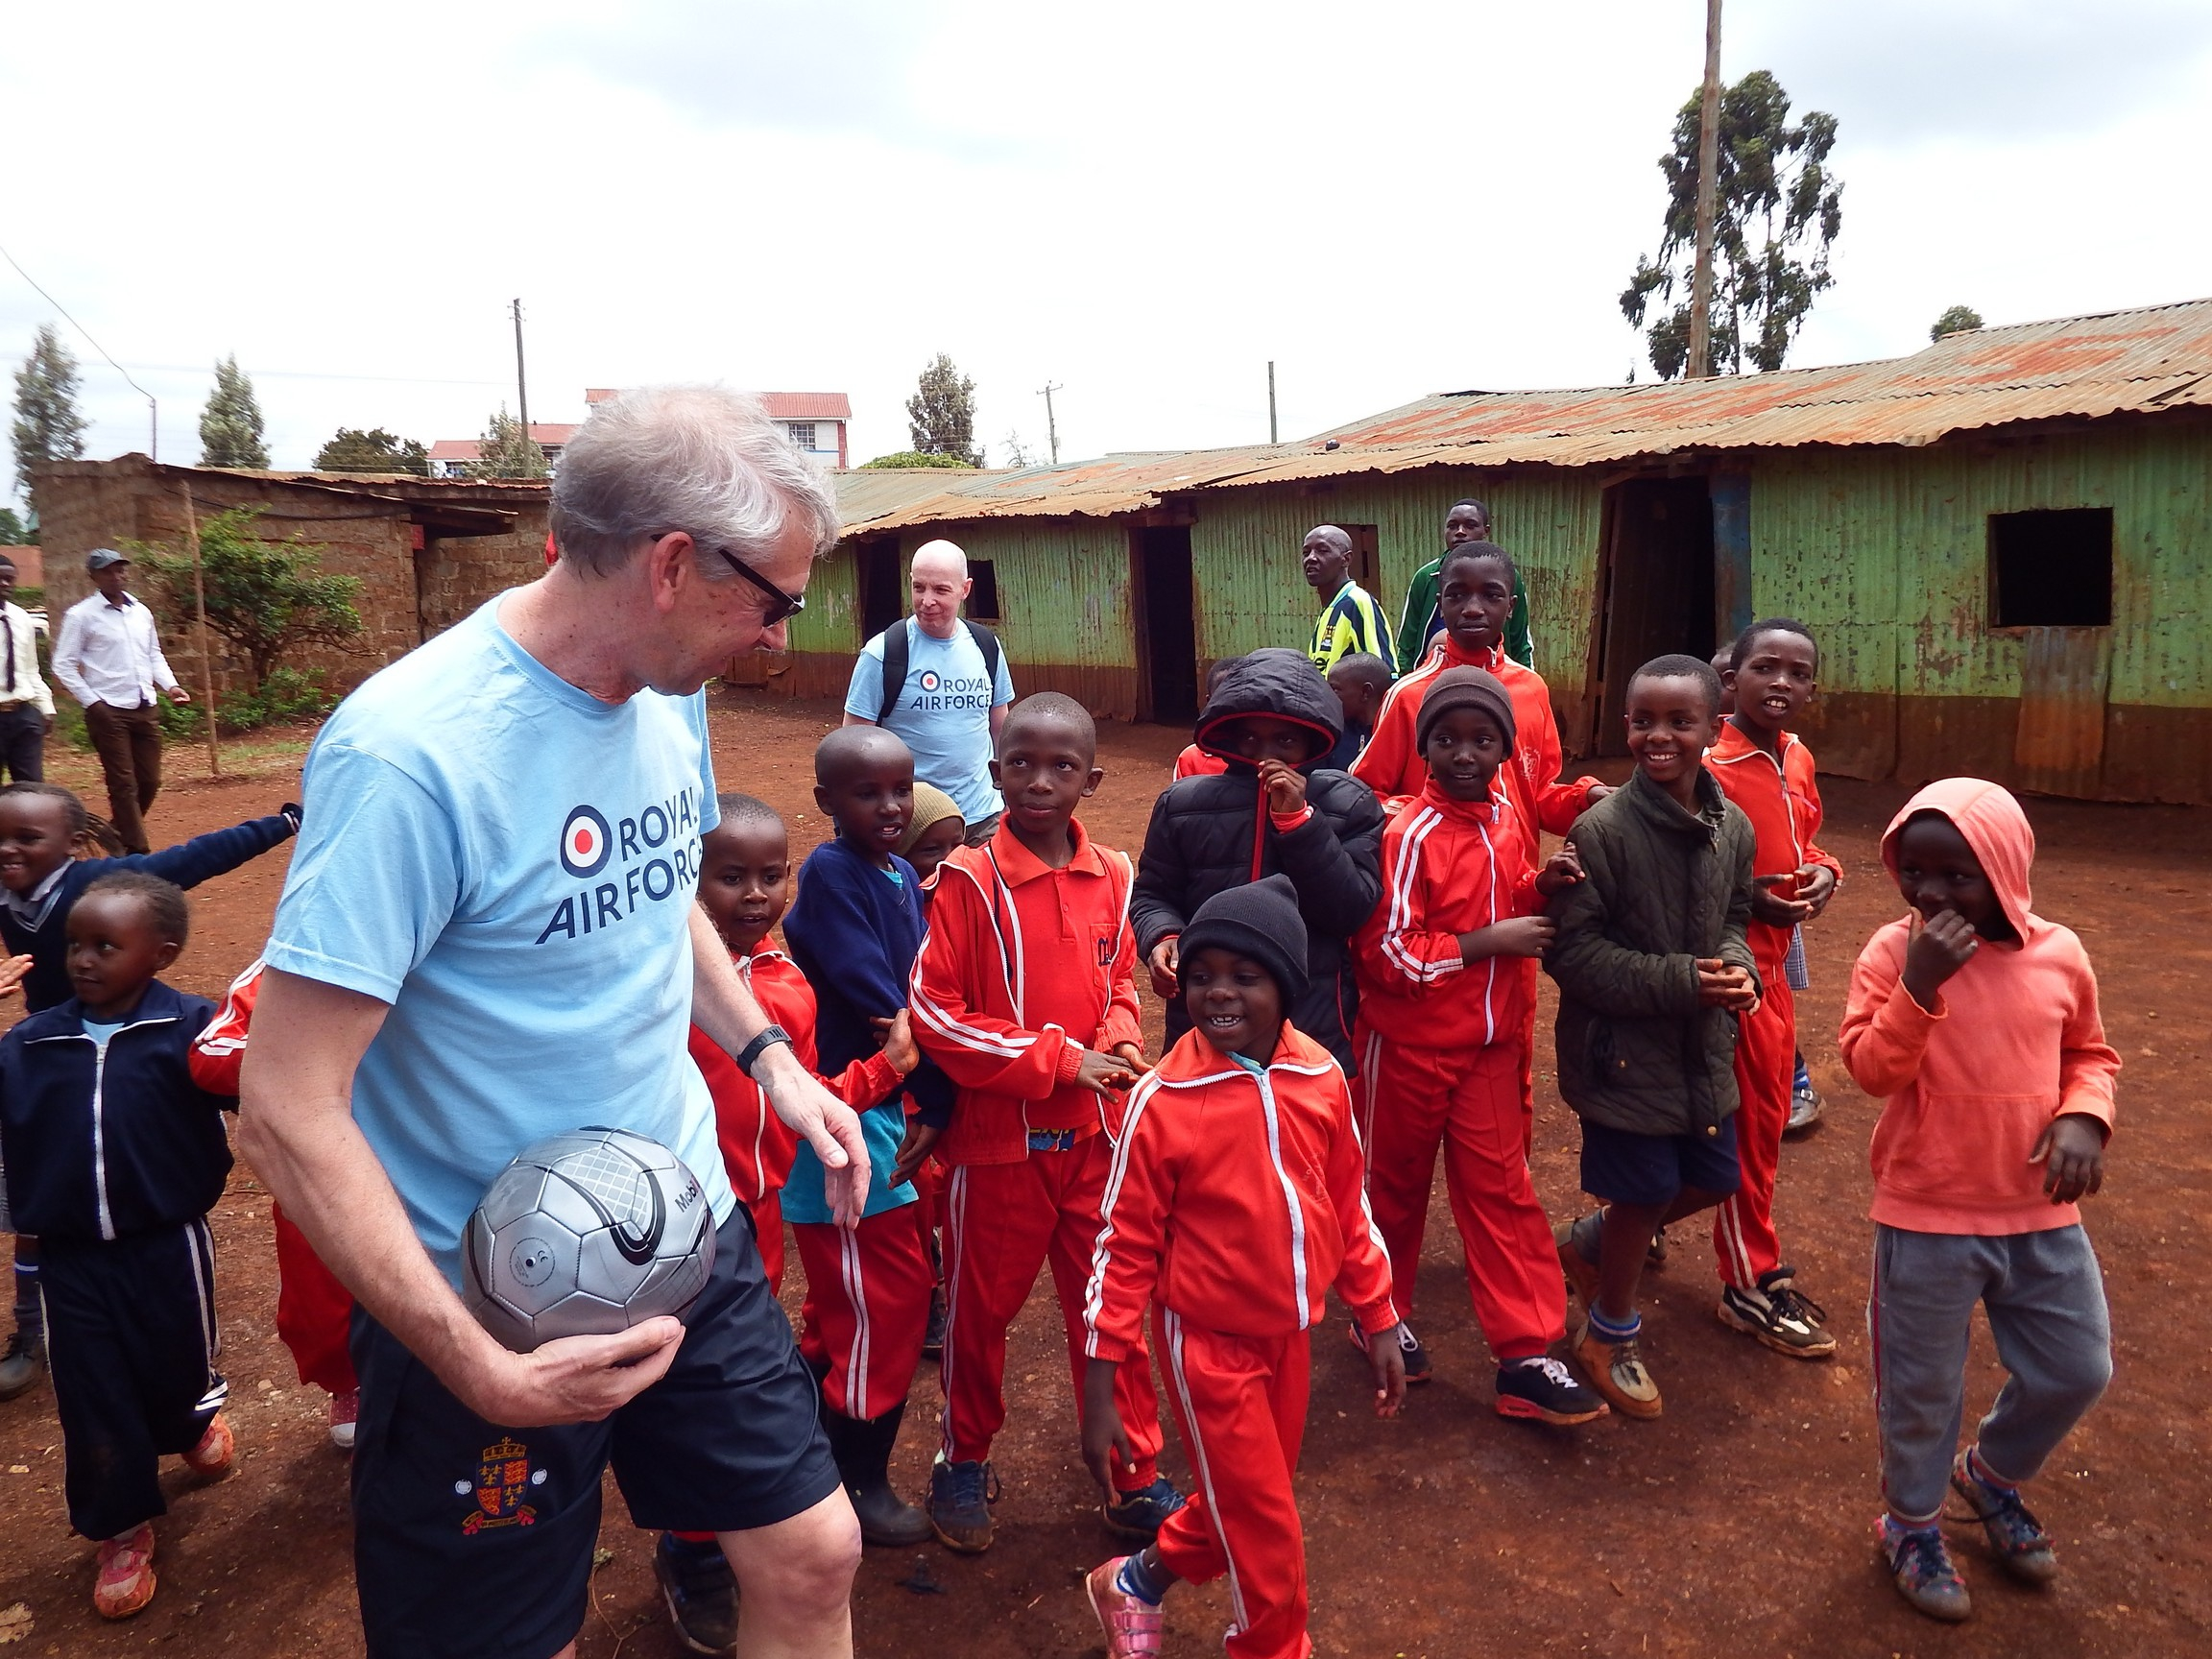 Football to Africa Photo 3